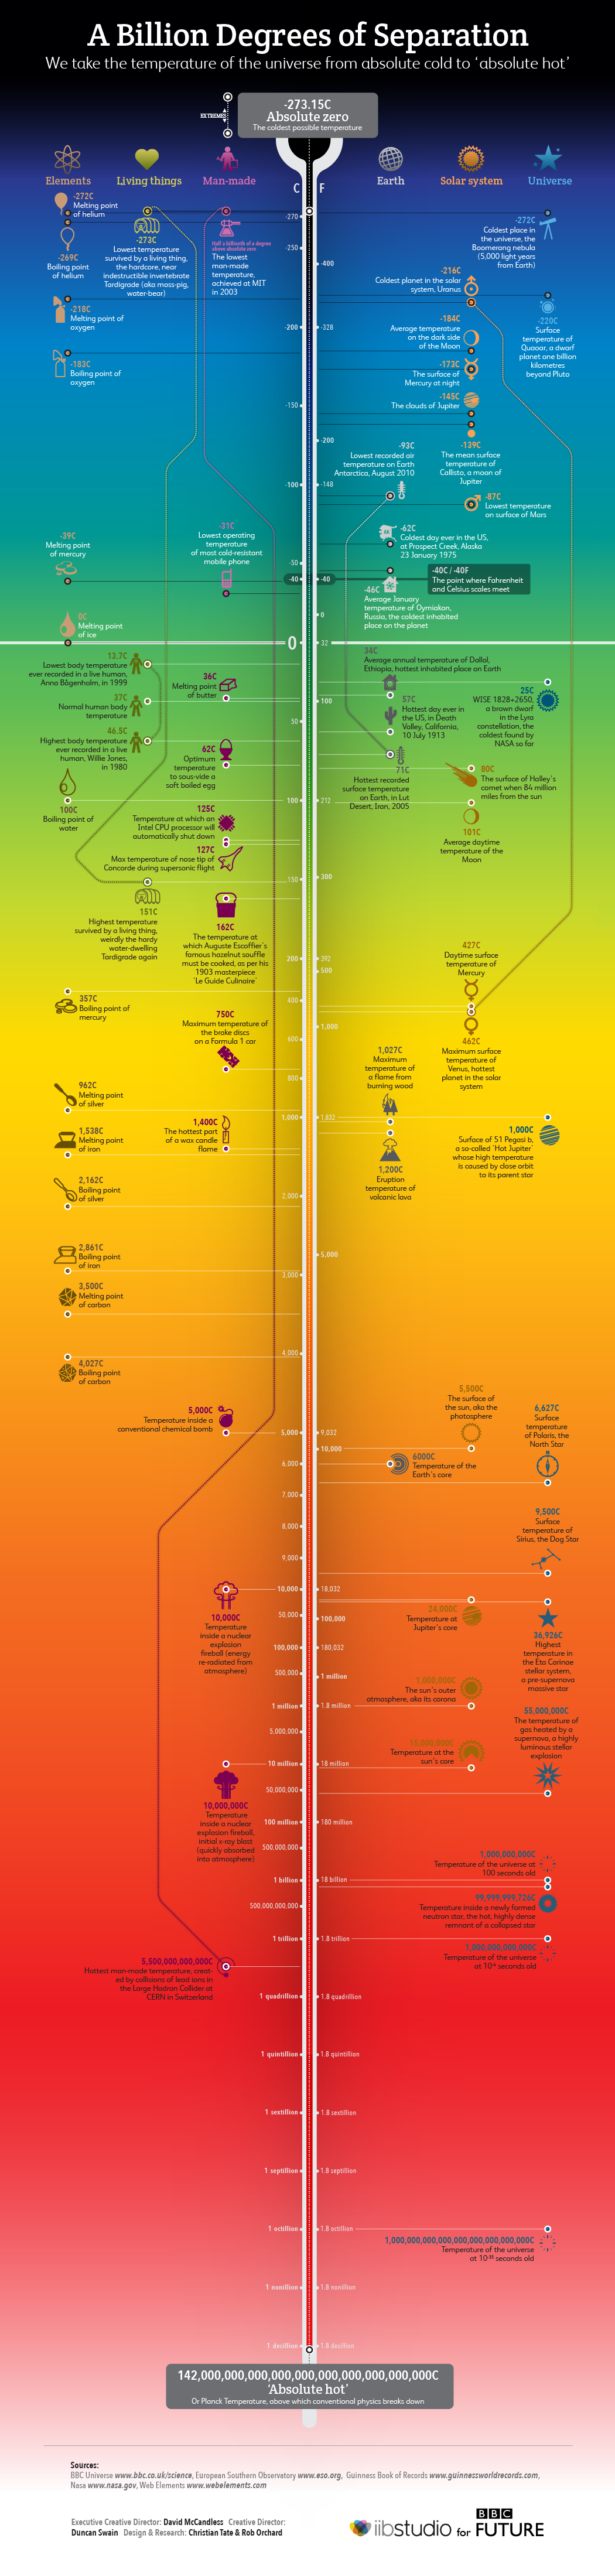 Extreme Temperatures in the Universe